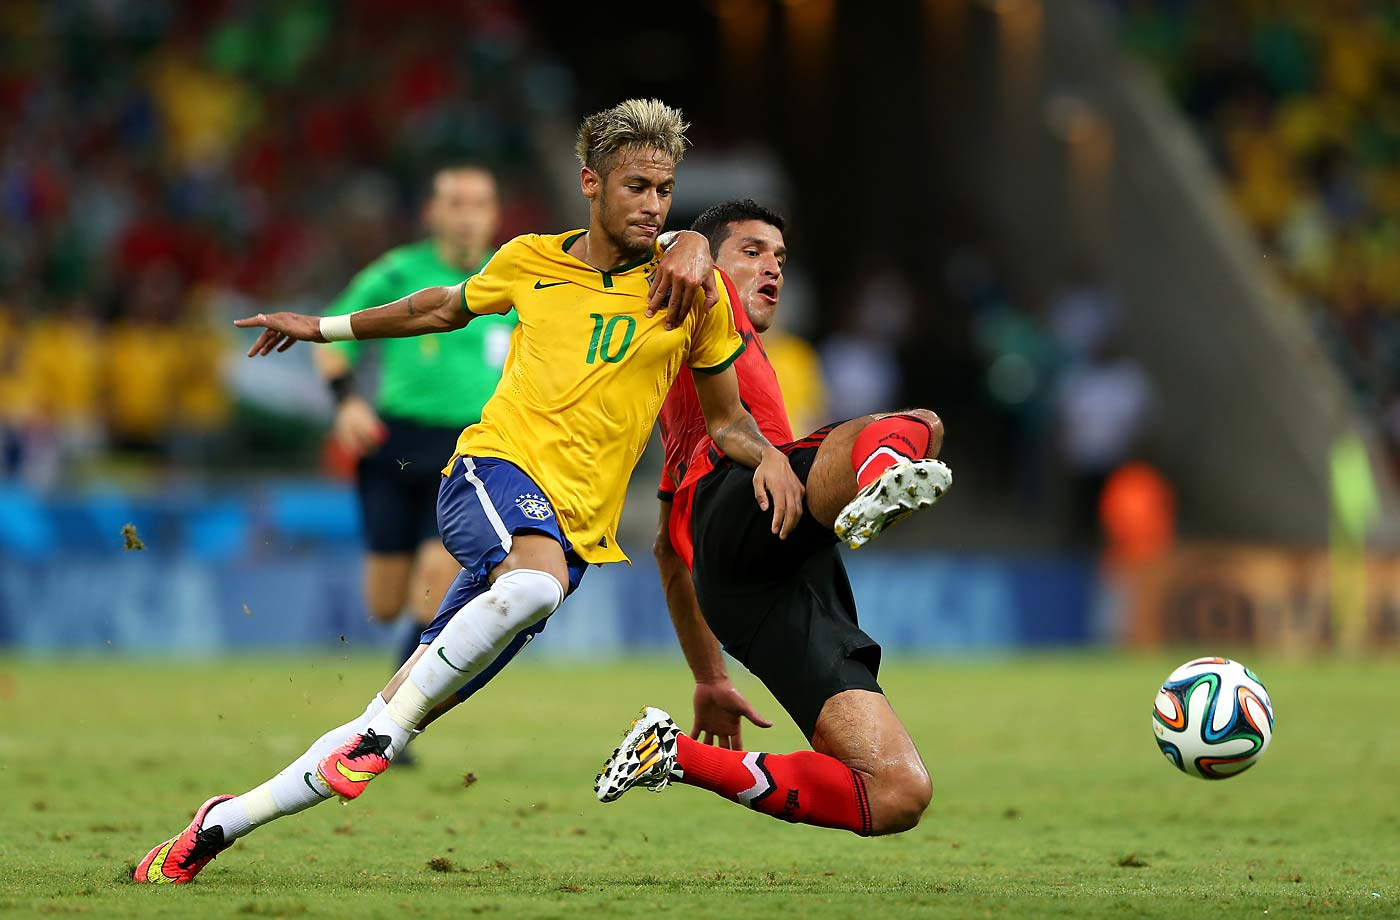 Neymar of Brazil and Francisco Javier Rodriguez of Mexico battle for the ball during the Group A match resulting in a 0-0 draw.